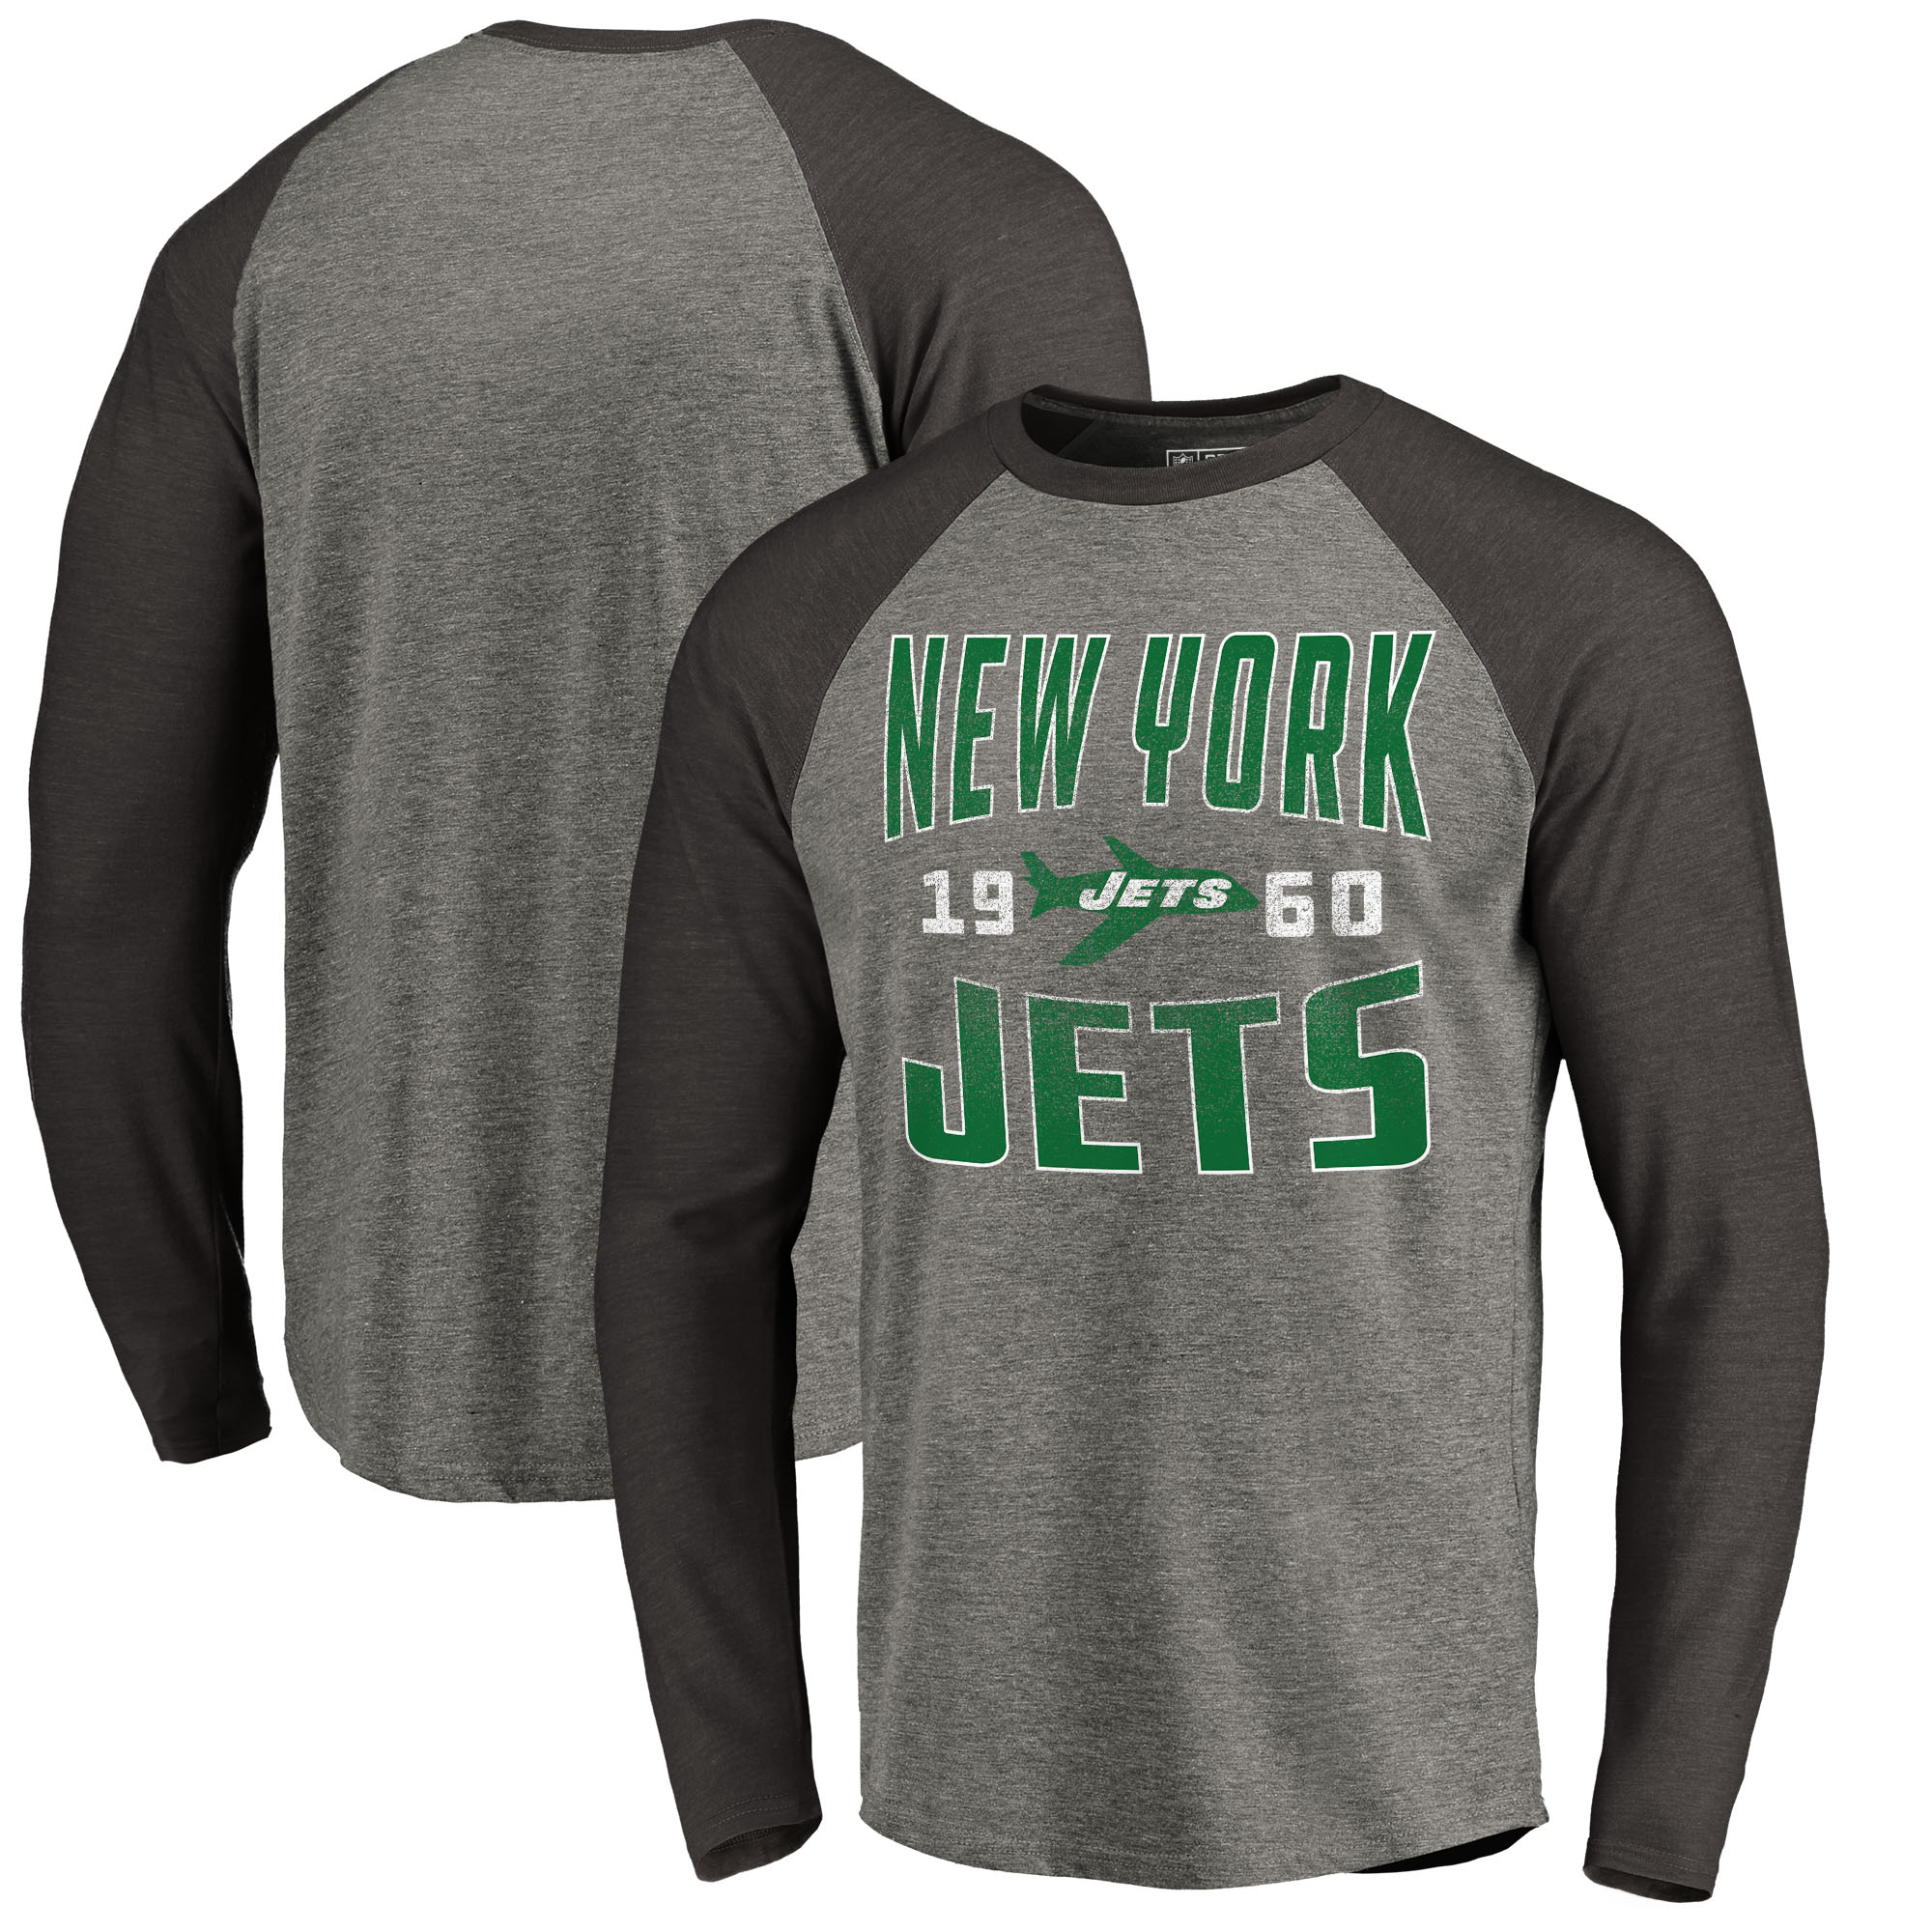 New York Jets NFL Pro Line by Fanatics Branded Timeless Collection Antique Stack Big & Tall Long Sleeve Raglan T-Shirt - Ash